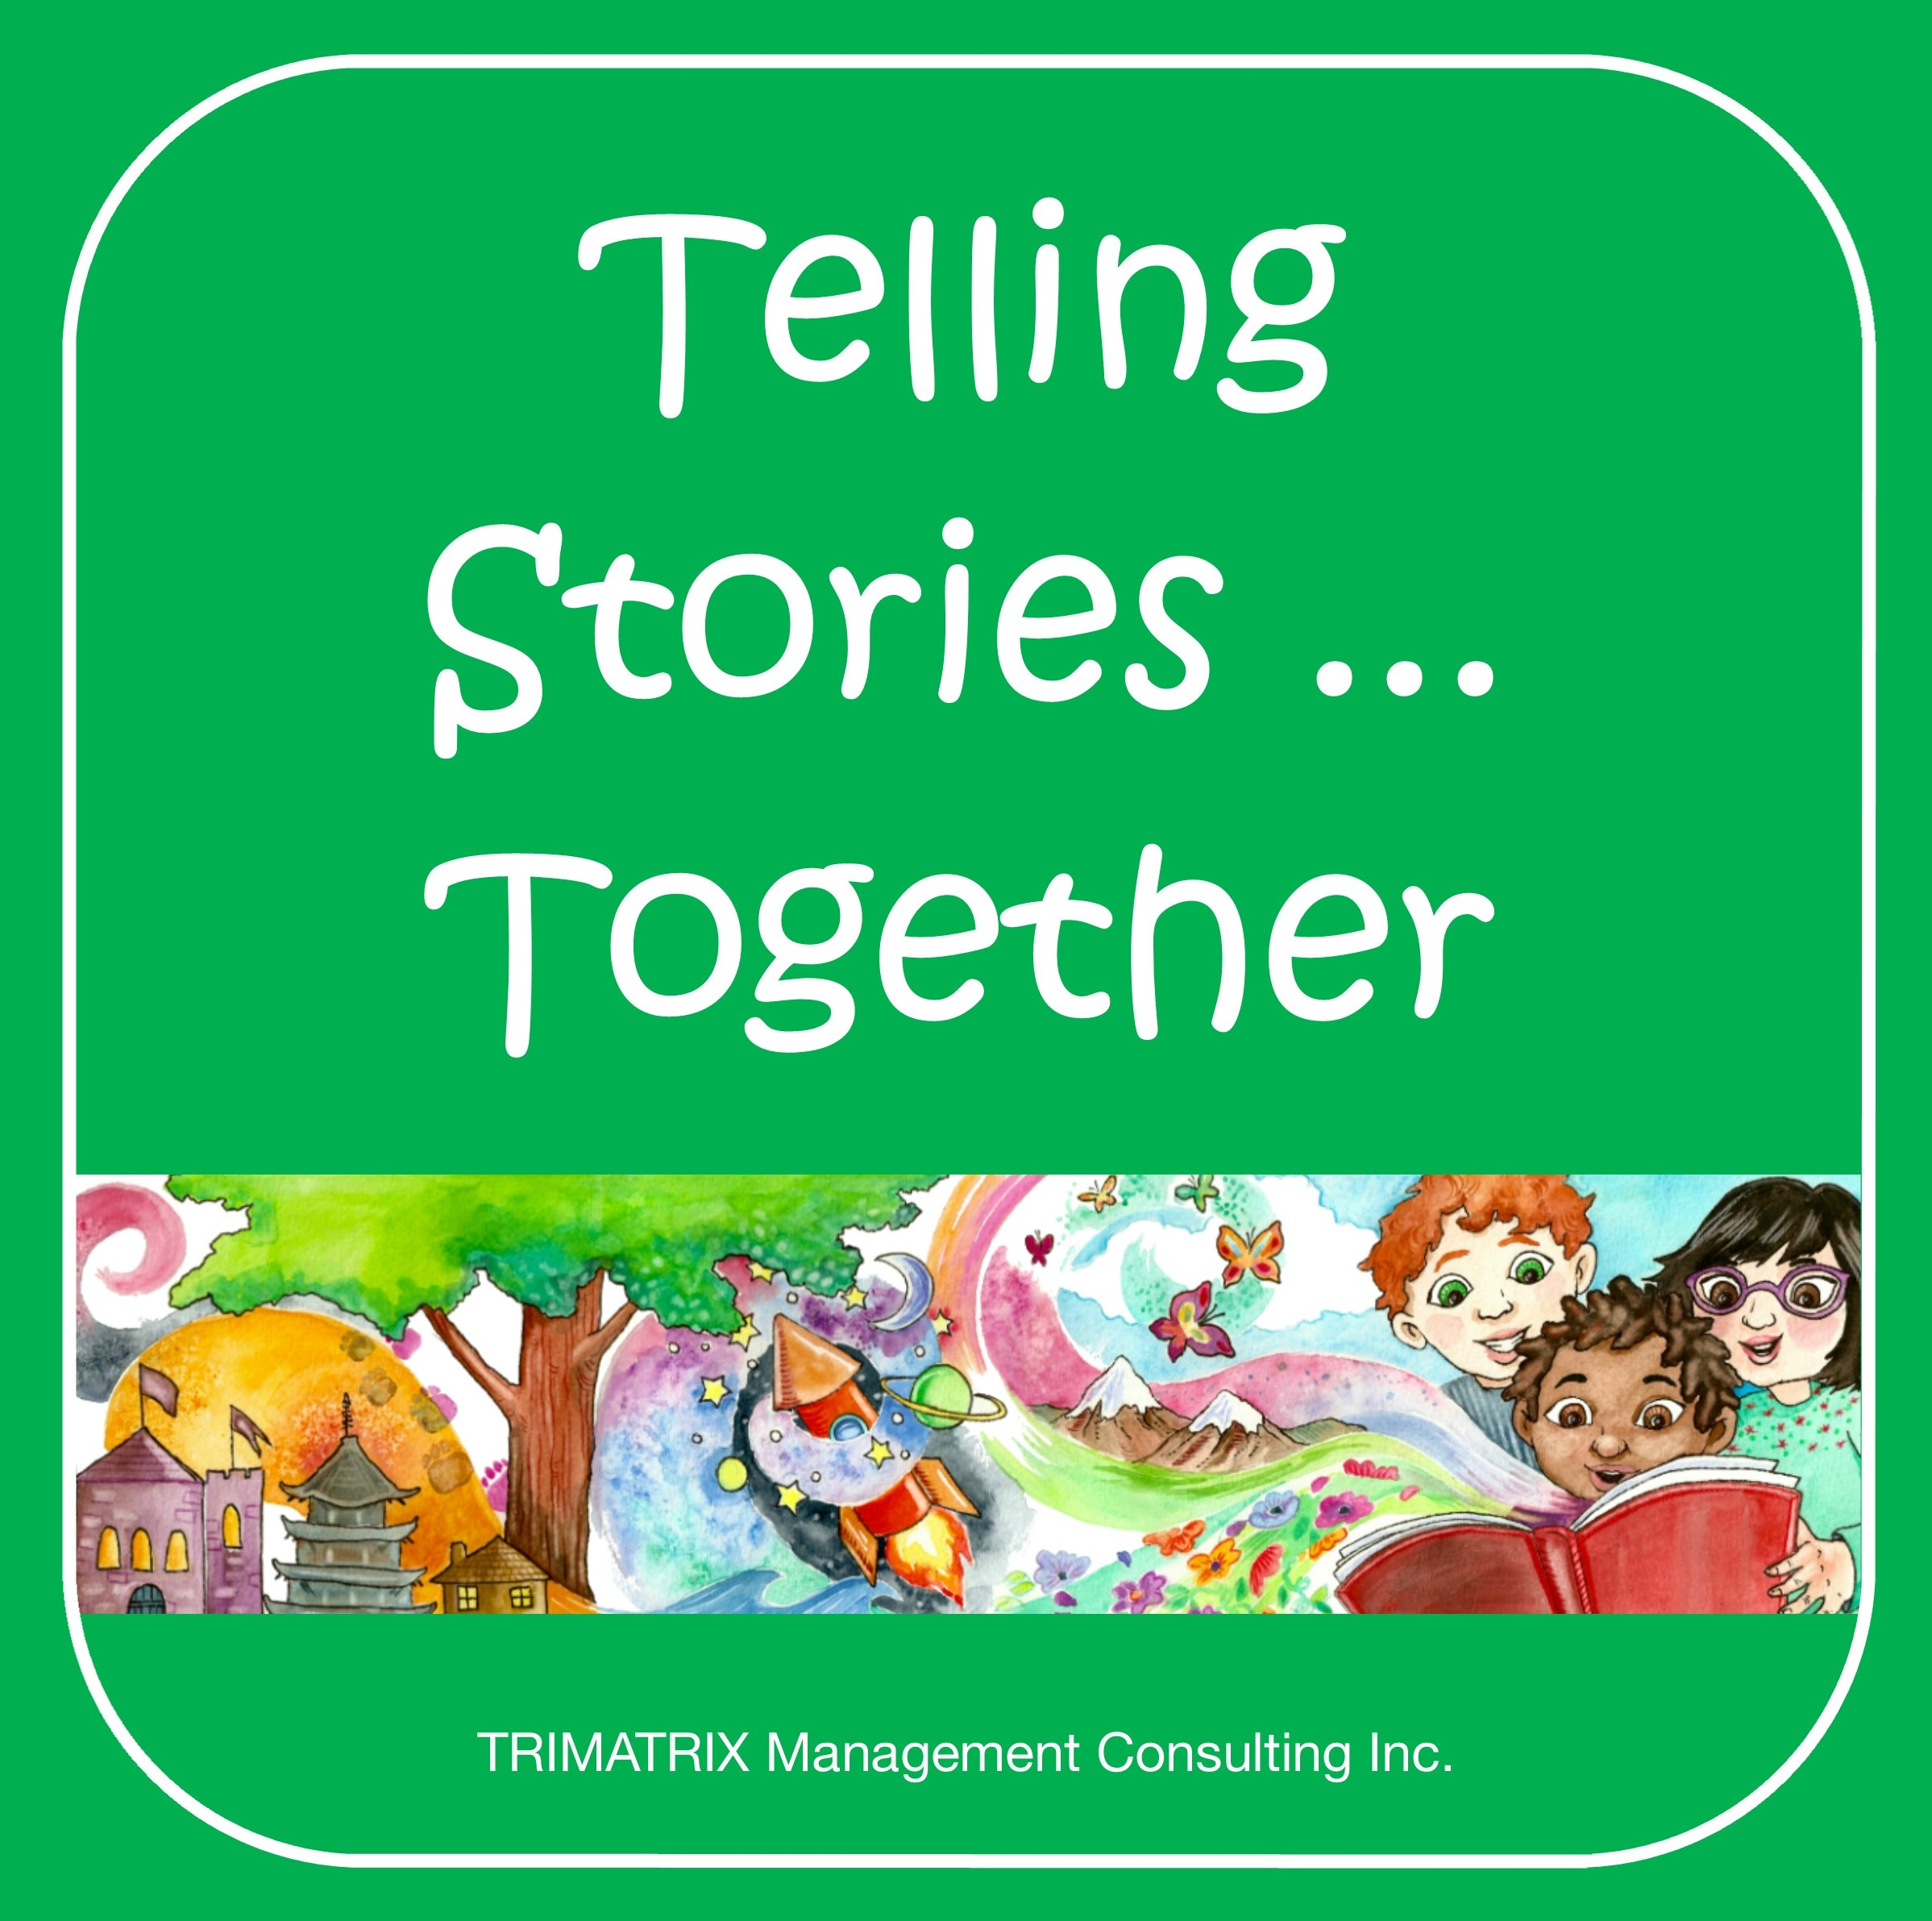 Telling Stories Together